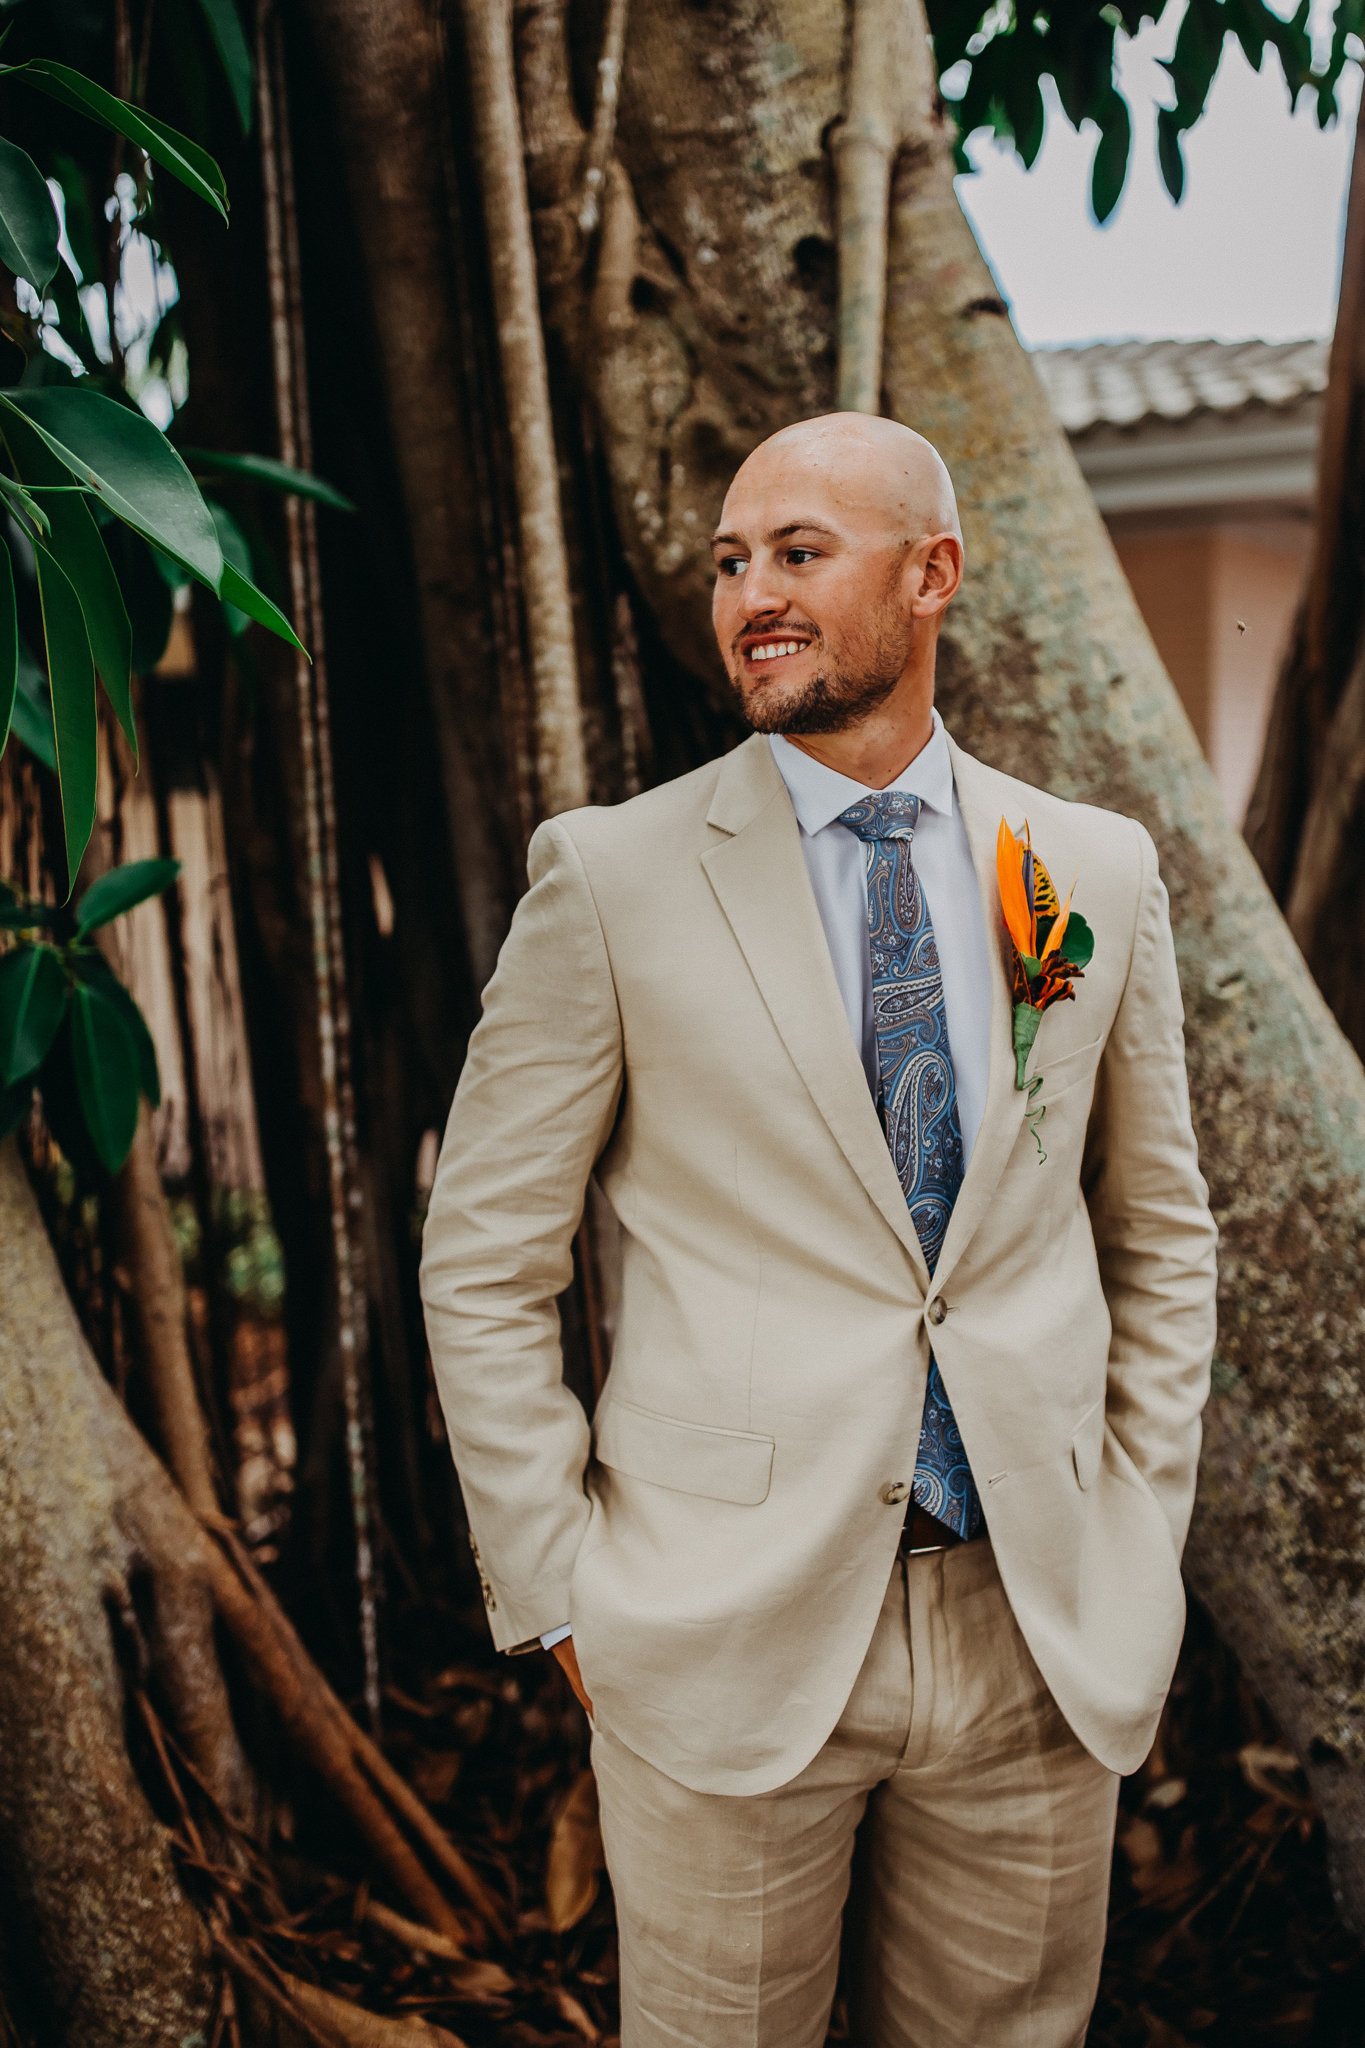 Colorful Florida Wedding Rad Red Creative (47 of 138).jpg